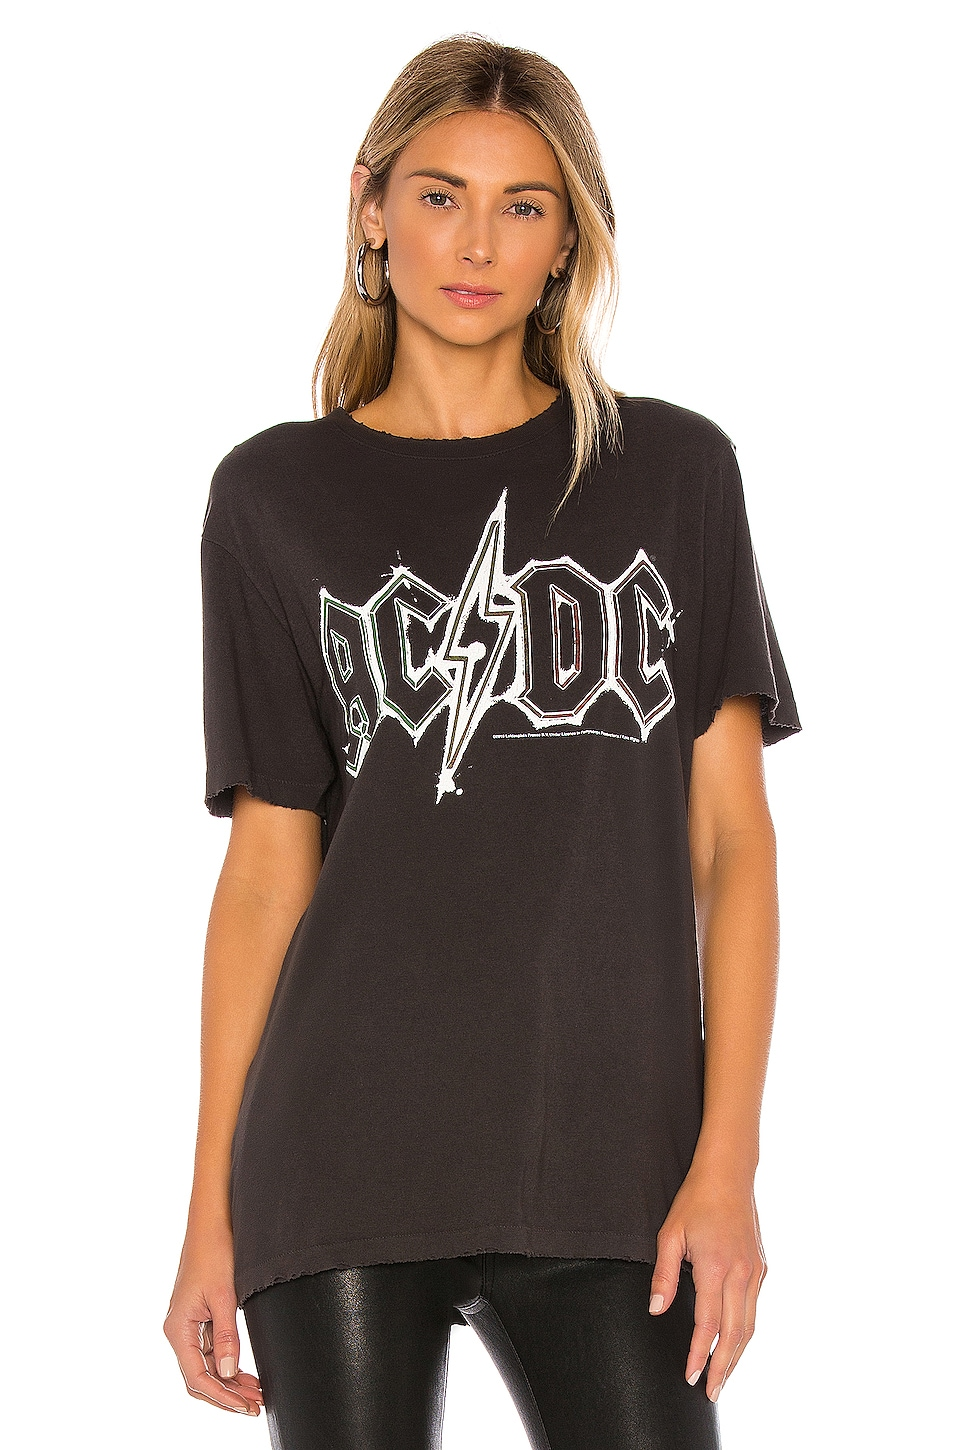 AC/DC Vintage Tee, view 2, click to view large image.